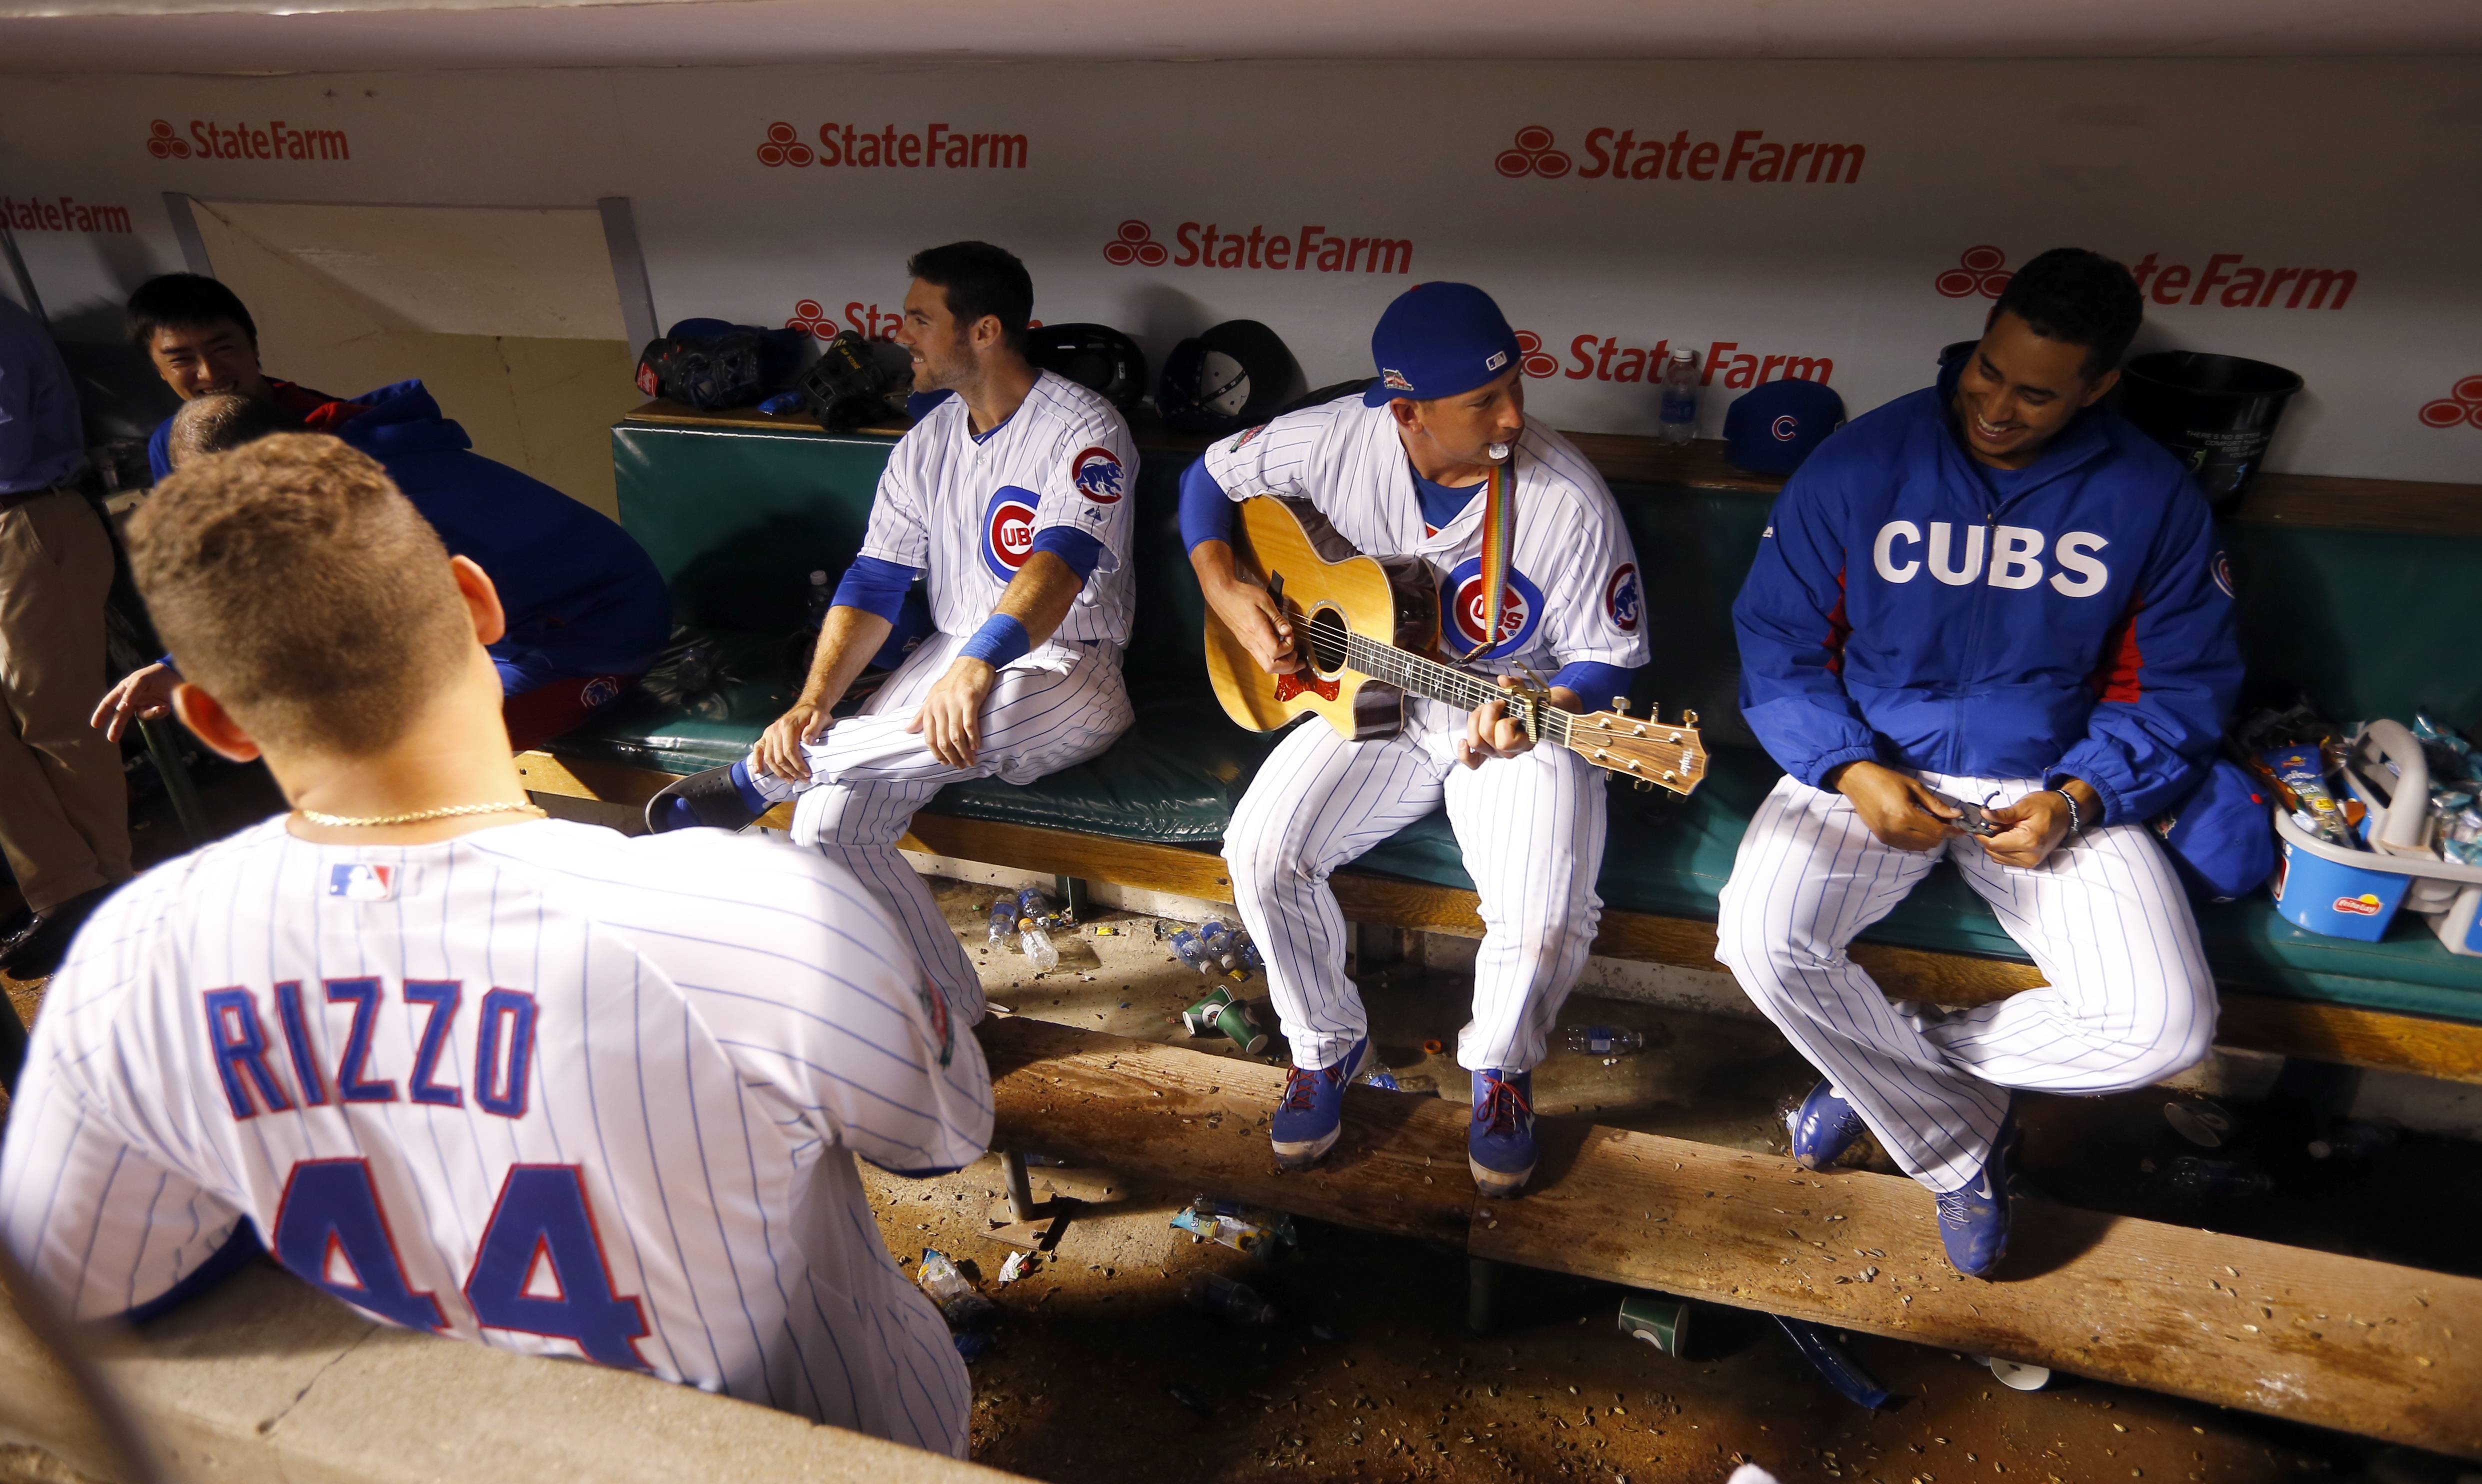 Chicago Cub backup catcher John Baker, center, plays his guitar during a rain delay at Wrigley Field during the fifth inning of a baseball game between the San Francisco Giants and the Chicago Cubs on Tuesday in Chicago.